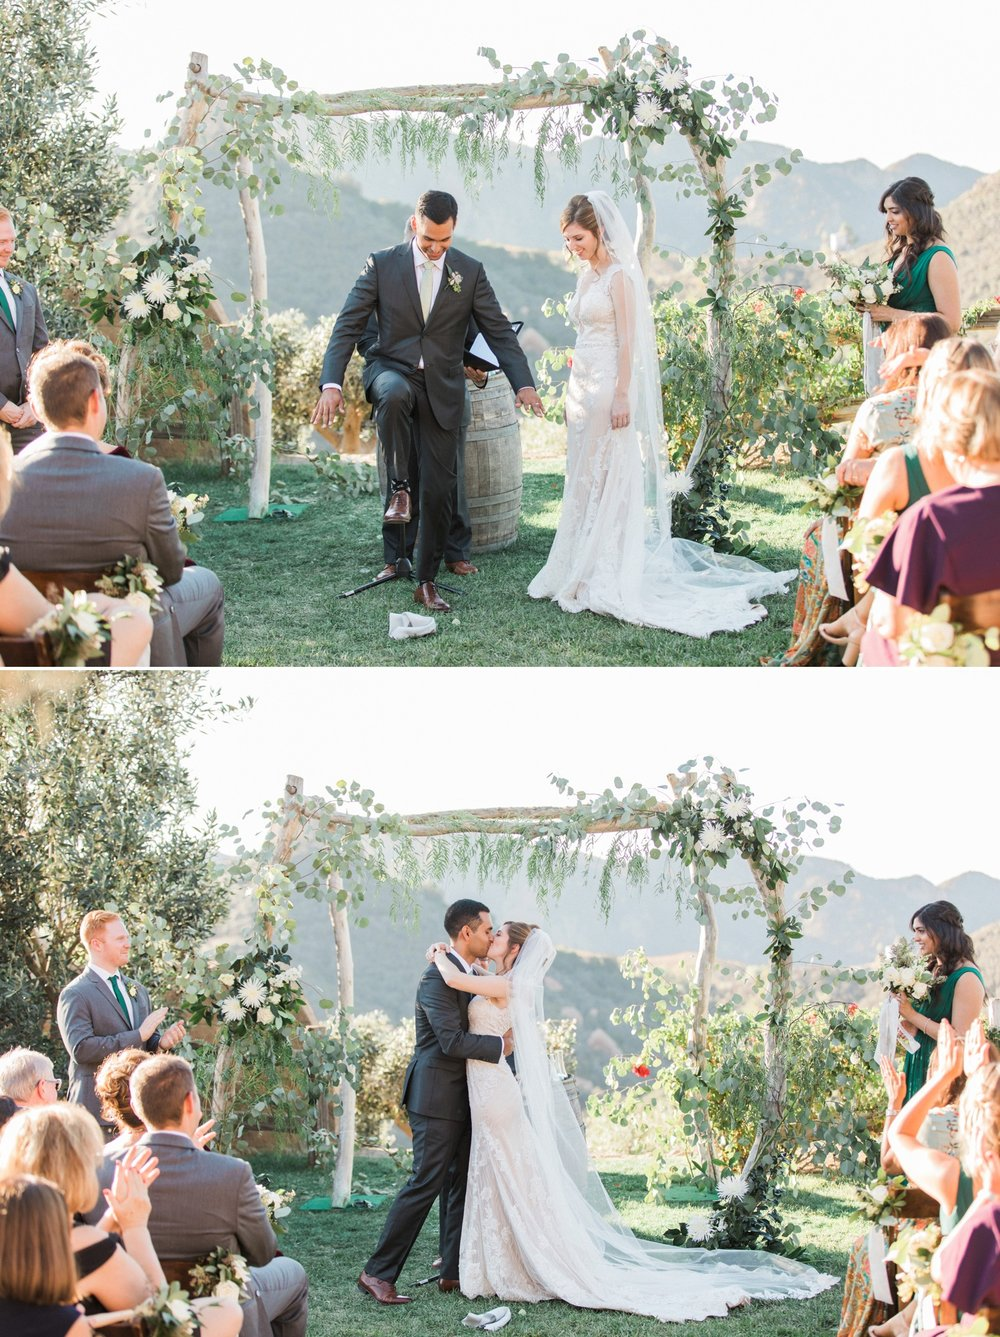 Cielo-Farms-Wedding-K-K-518.jpg